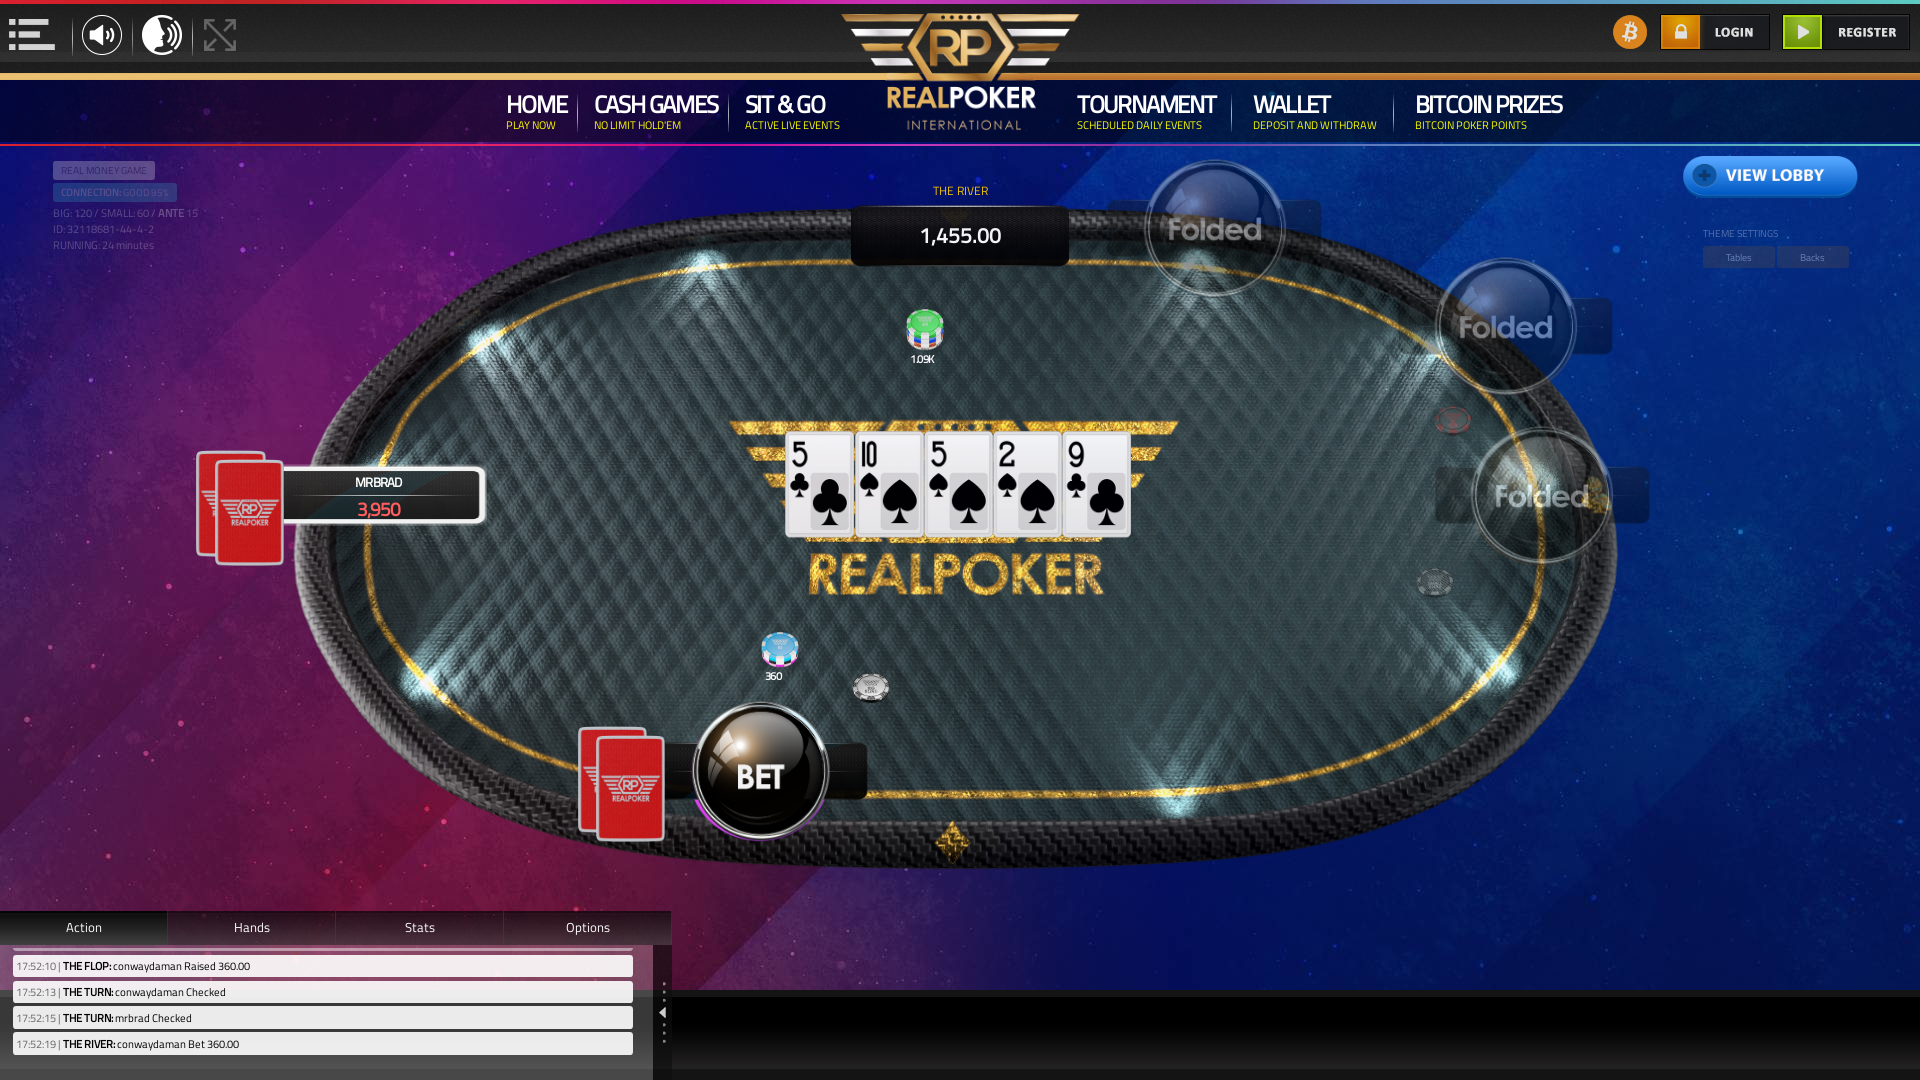 10 player texas holdem table at real poker with the table id 32118681